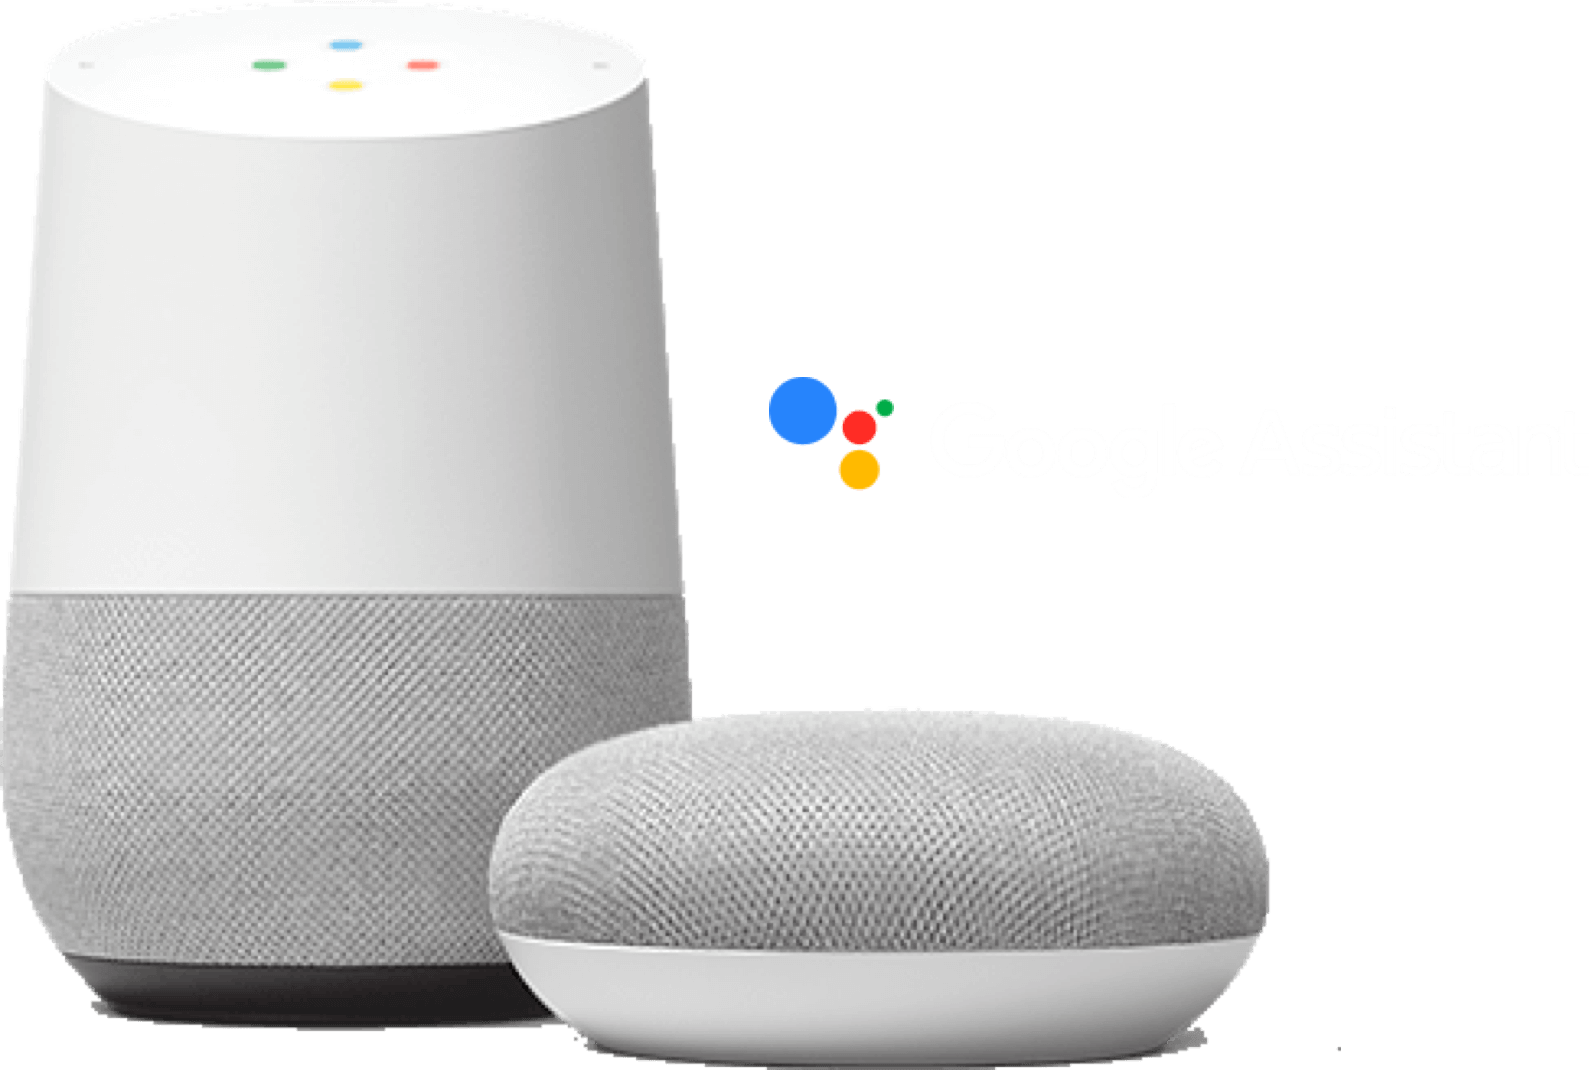 Google Assistant Voice Chatbot